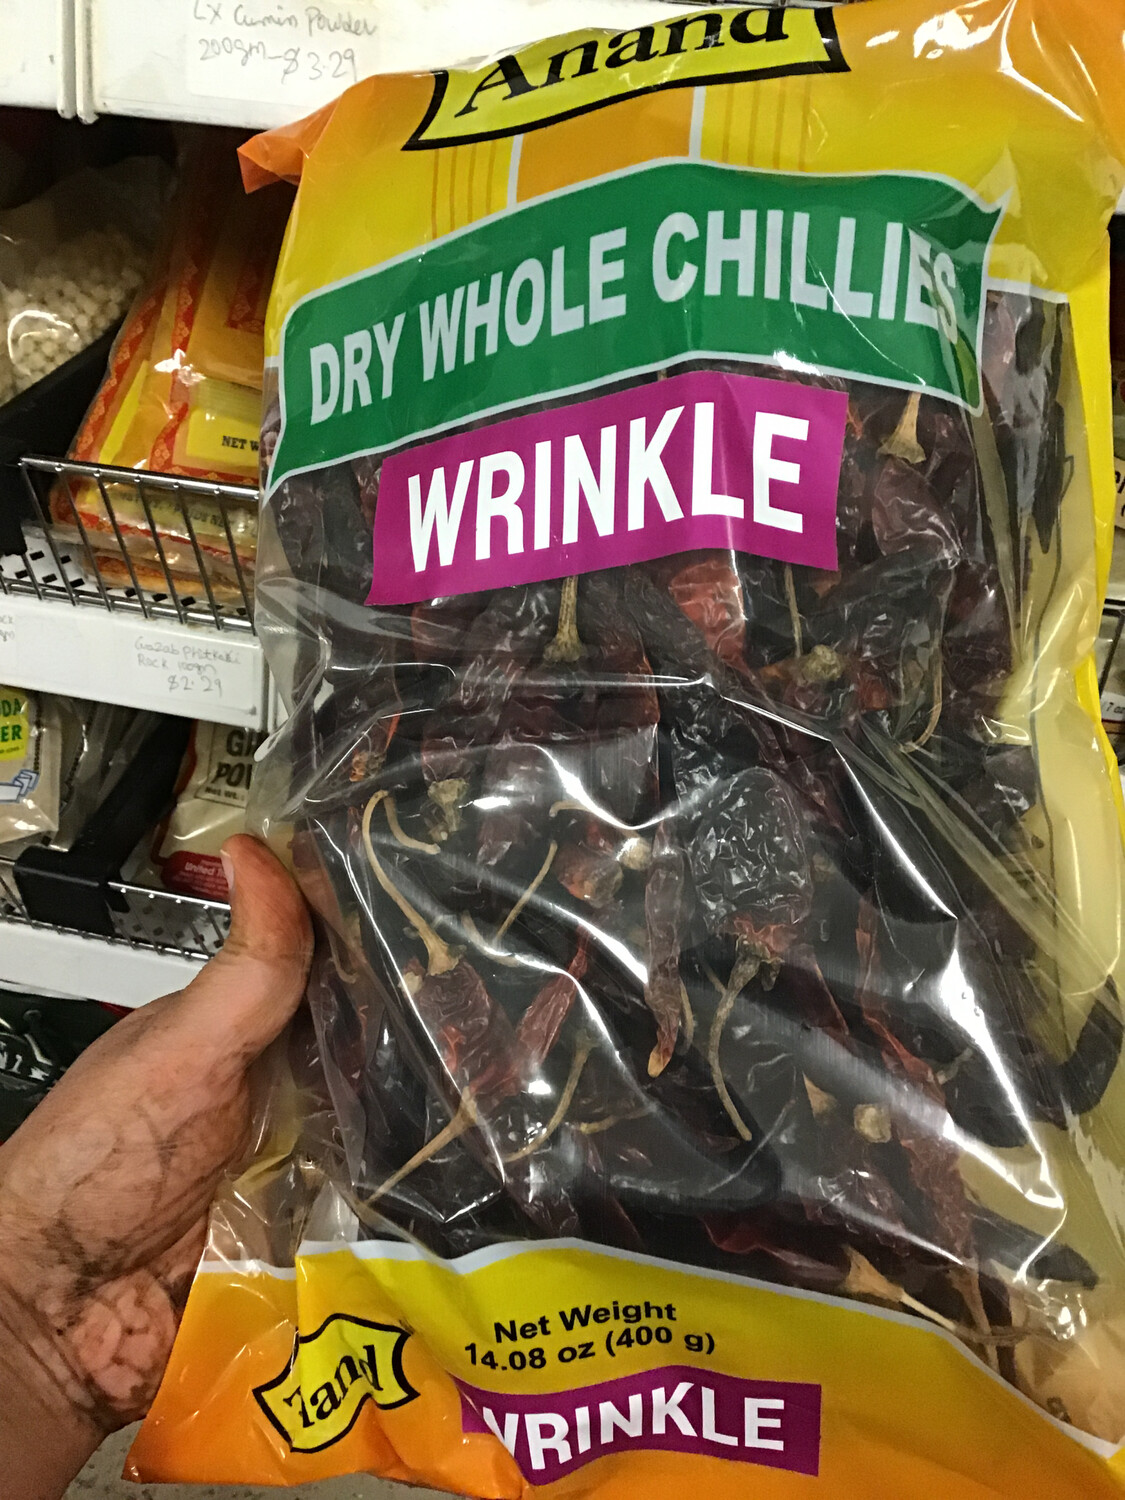 Anand Wrinkled Variety Dry Whole chillies 400 g (W3)